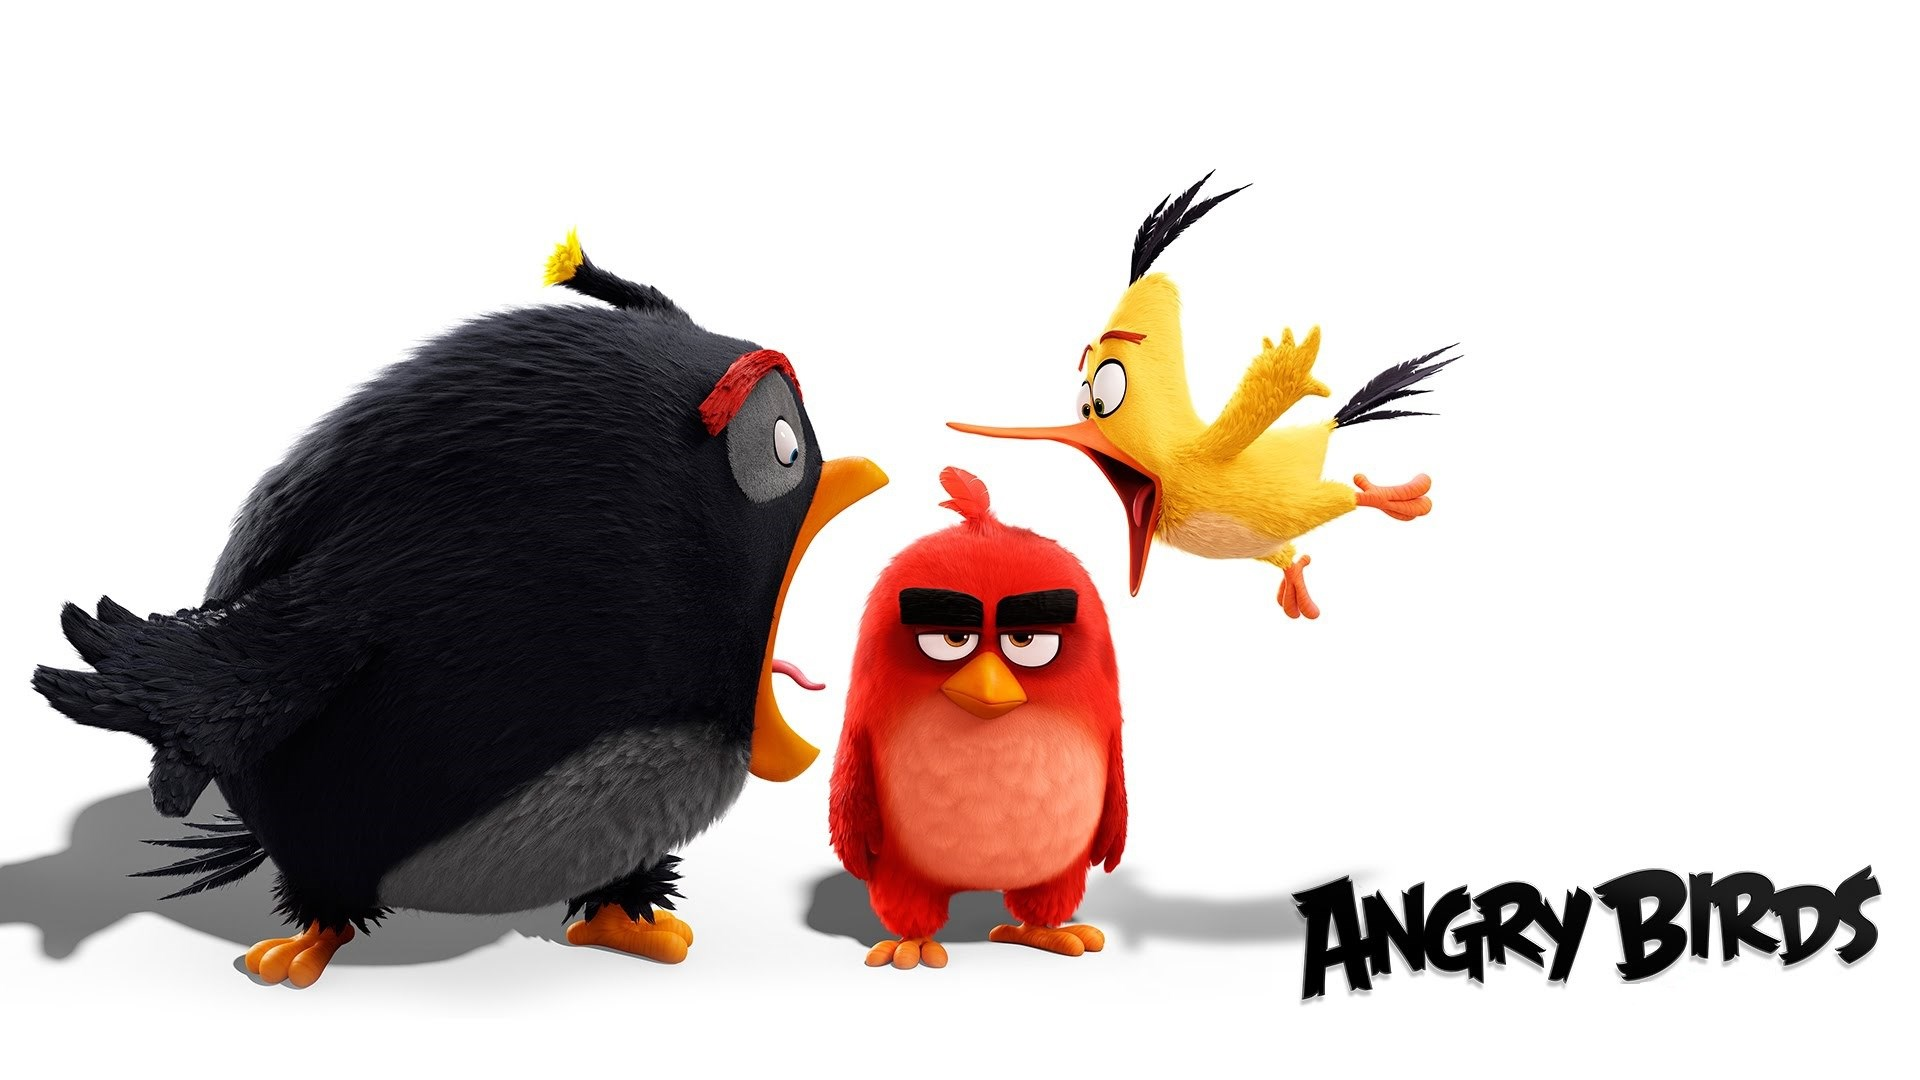 1920x1080-px-windows-angry-birds-by-Jamarcus-Birds-for-TrunkWeed-wallpaper-wp340905